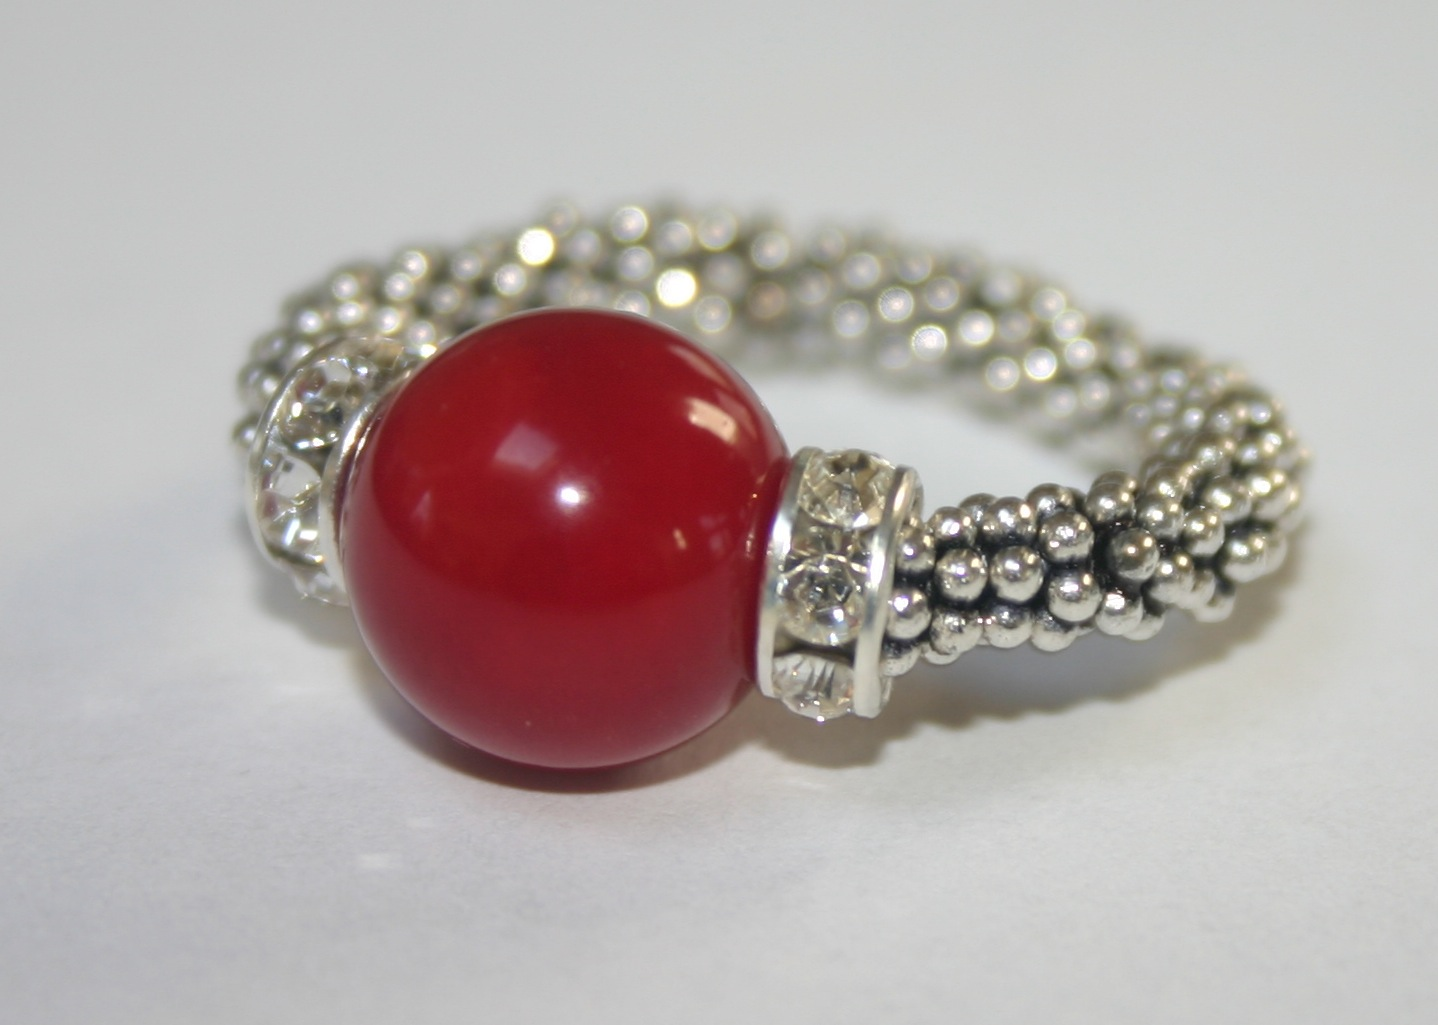 Red Coral Stone Understanding Its Good Effects On Wearing It